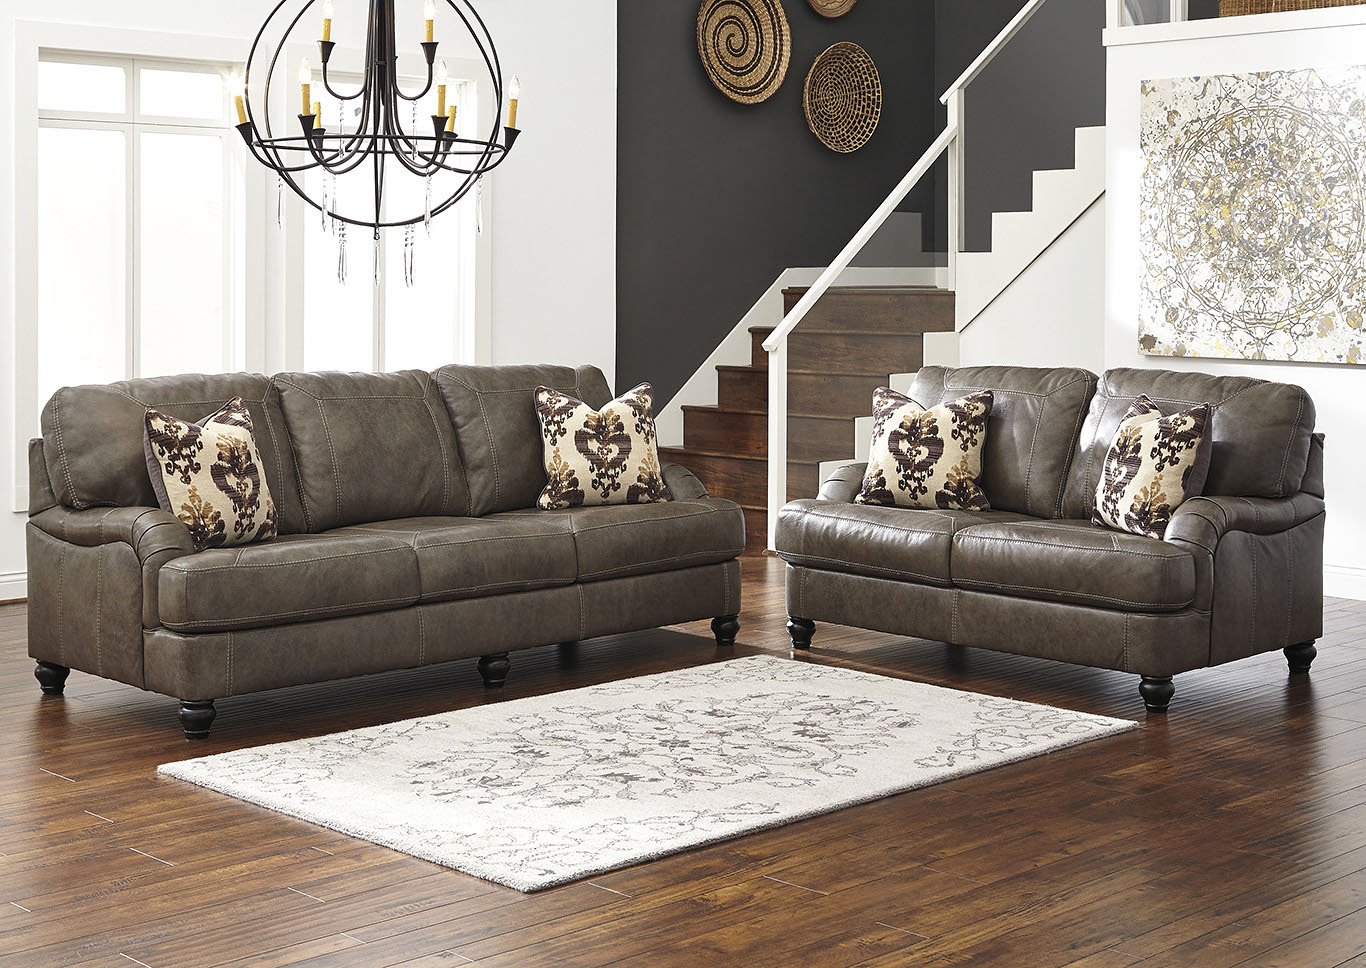 Beverly Hills Furniture Bronx Ny Kannerdy Quarry Sofa And Loveseat